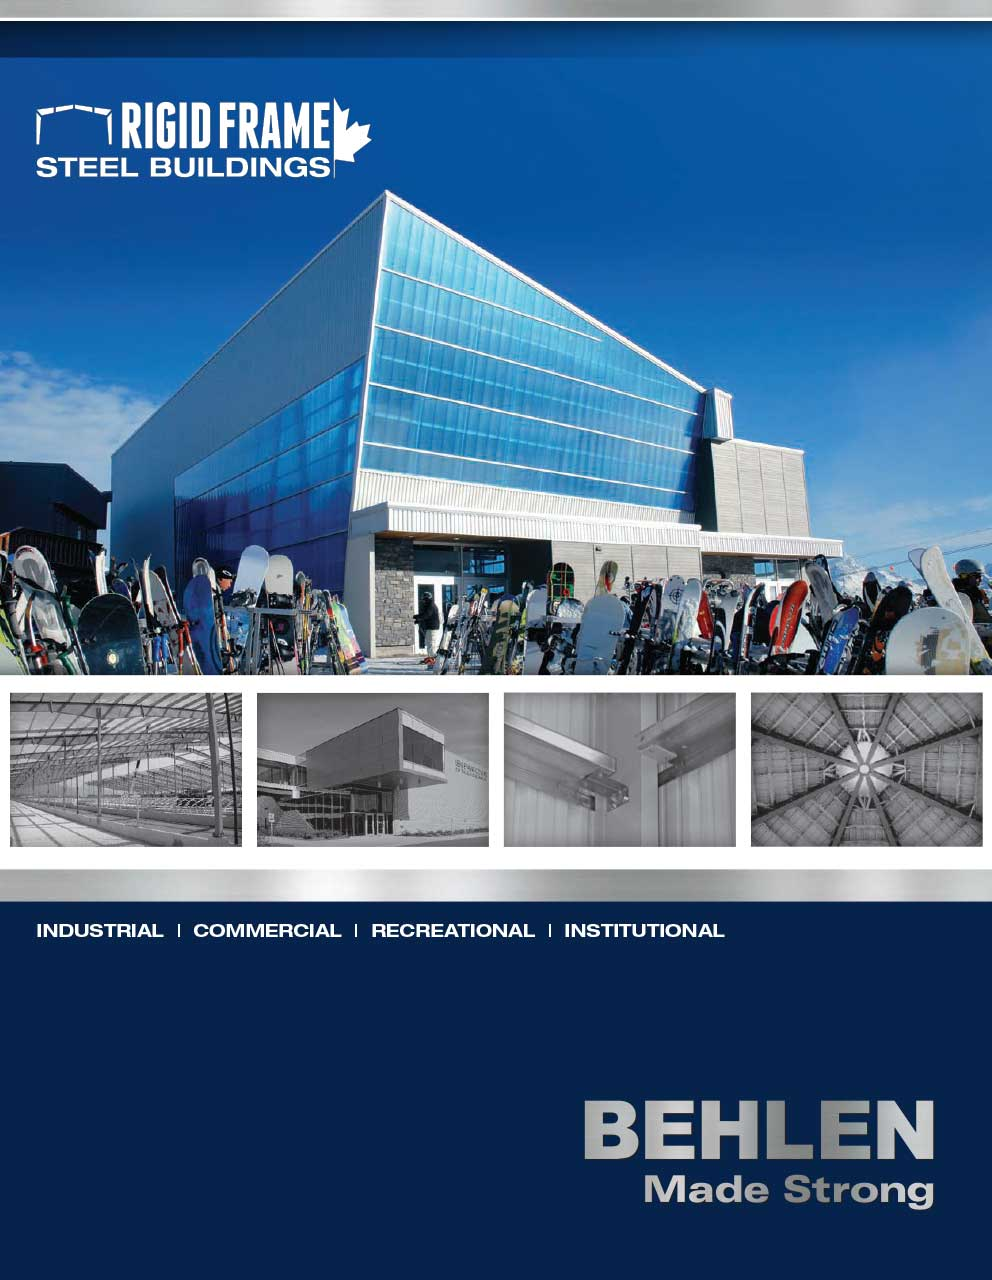 Behlen Industries - Rigid Frame Steel Buildings